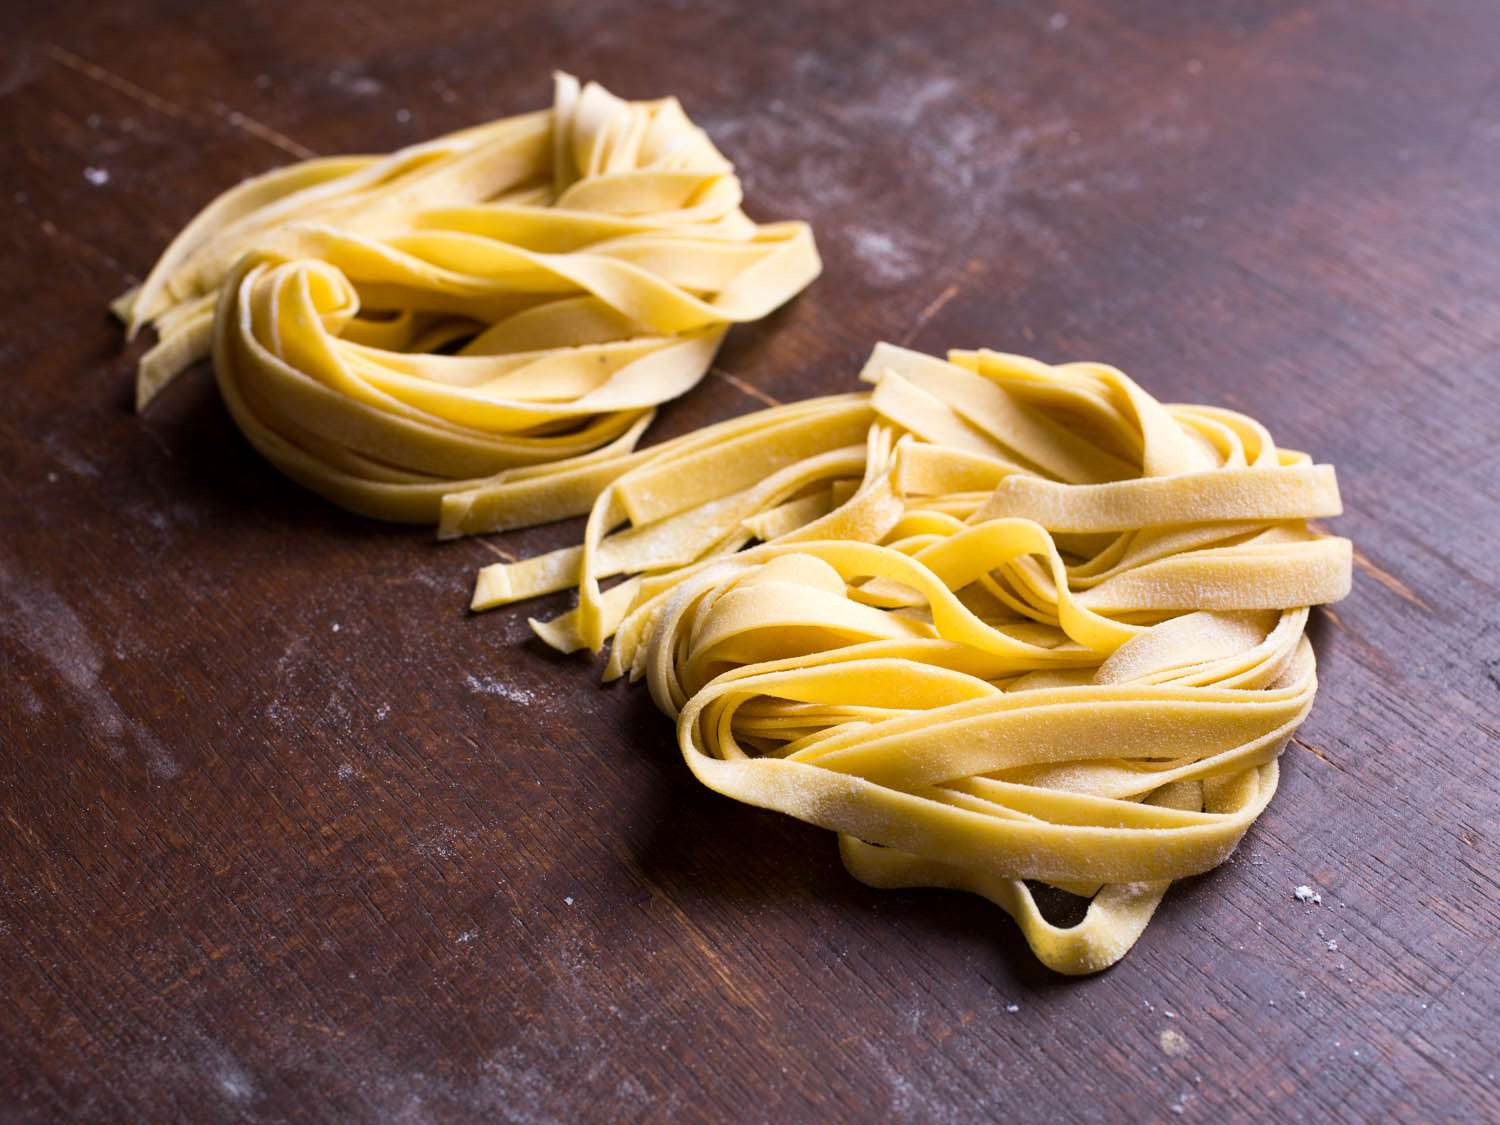 Nests of fresh pasta ribbons on a wooden surface